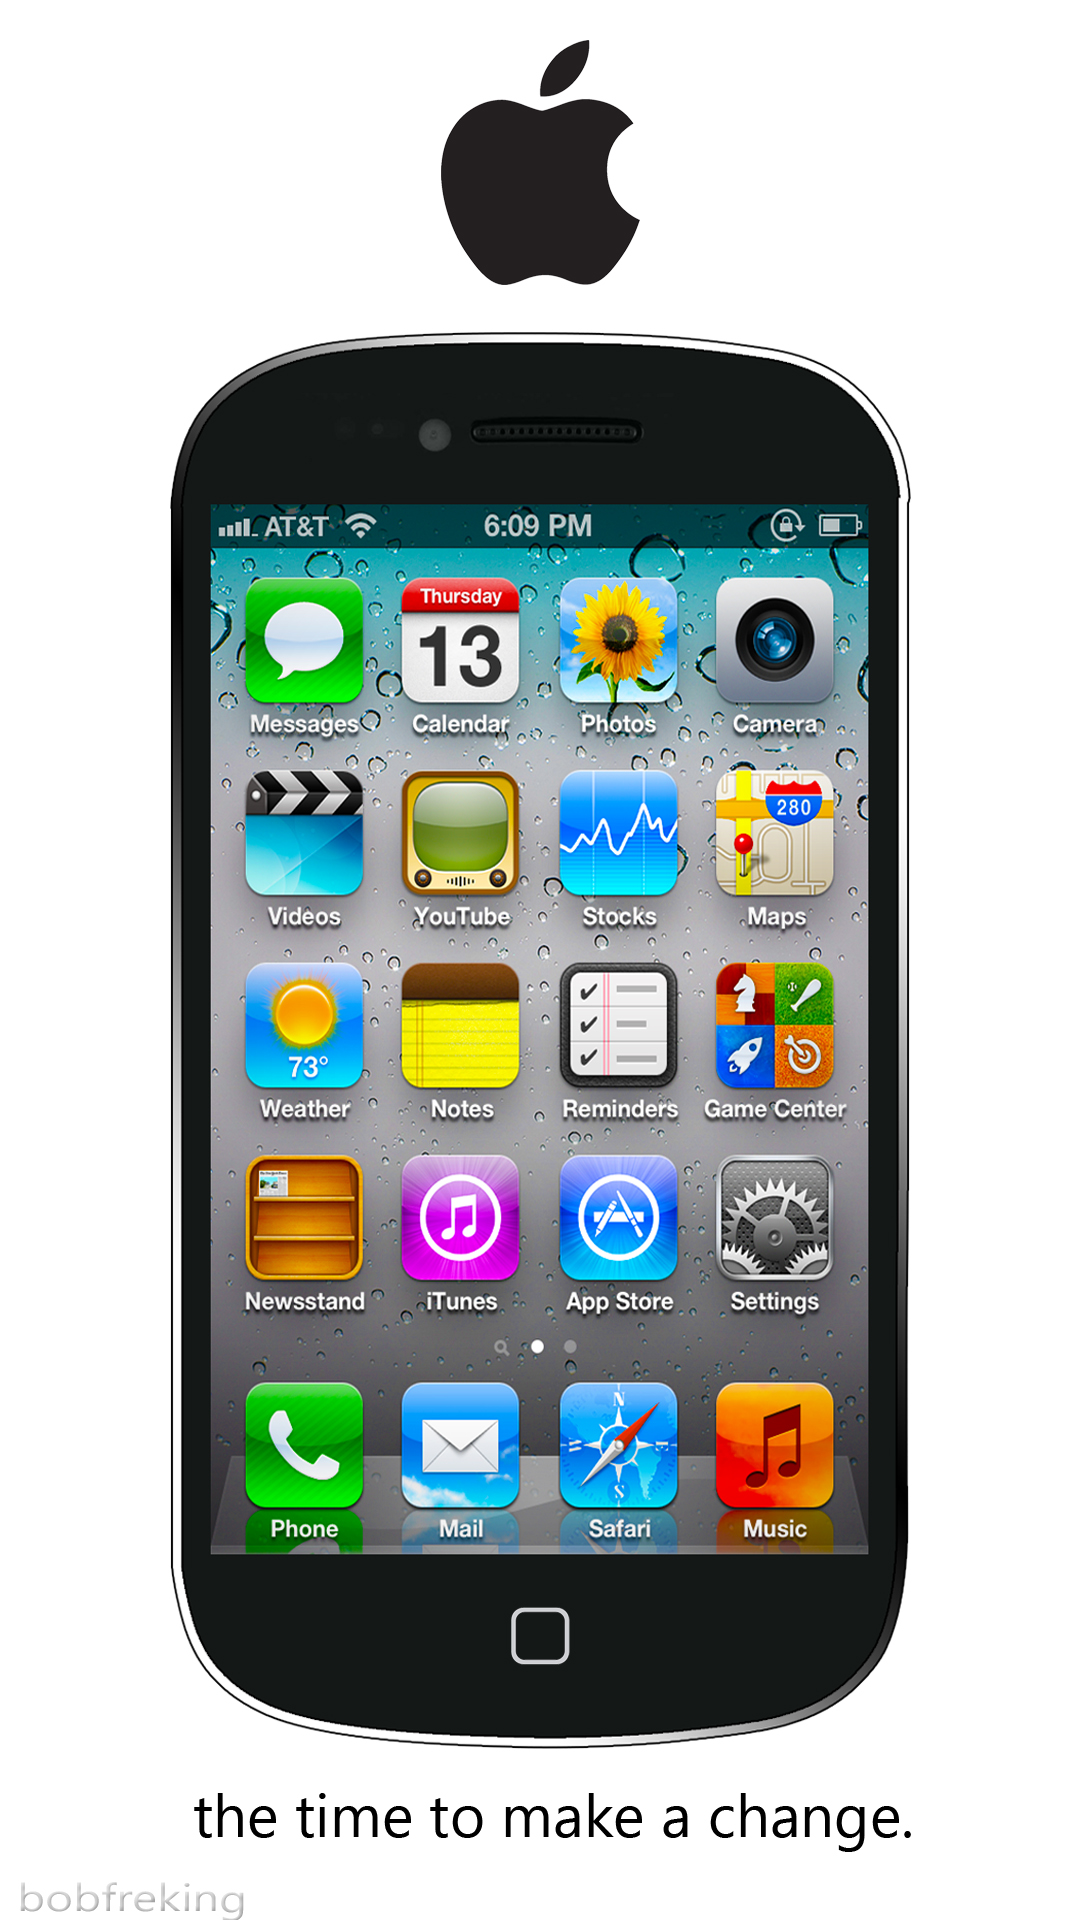 New Generation iPhone Features Quad Core CPU, New Retina Display: 1400 x 960 Pixels in Resolution